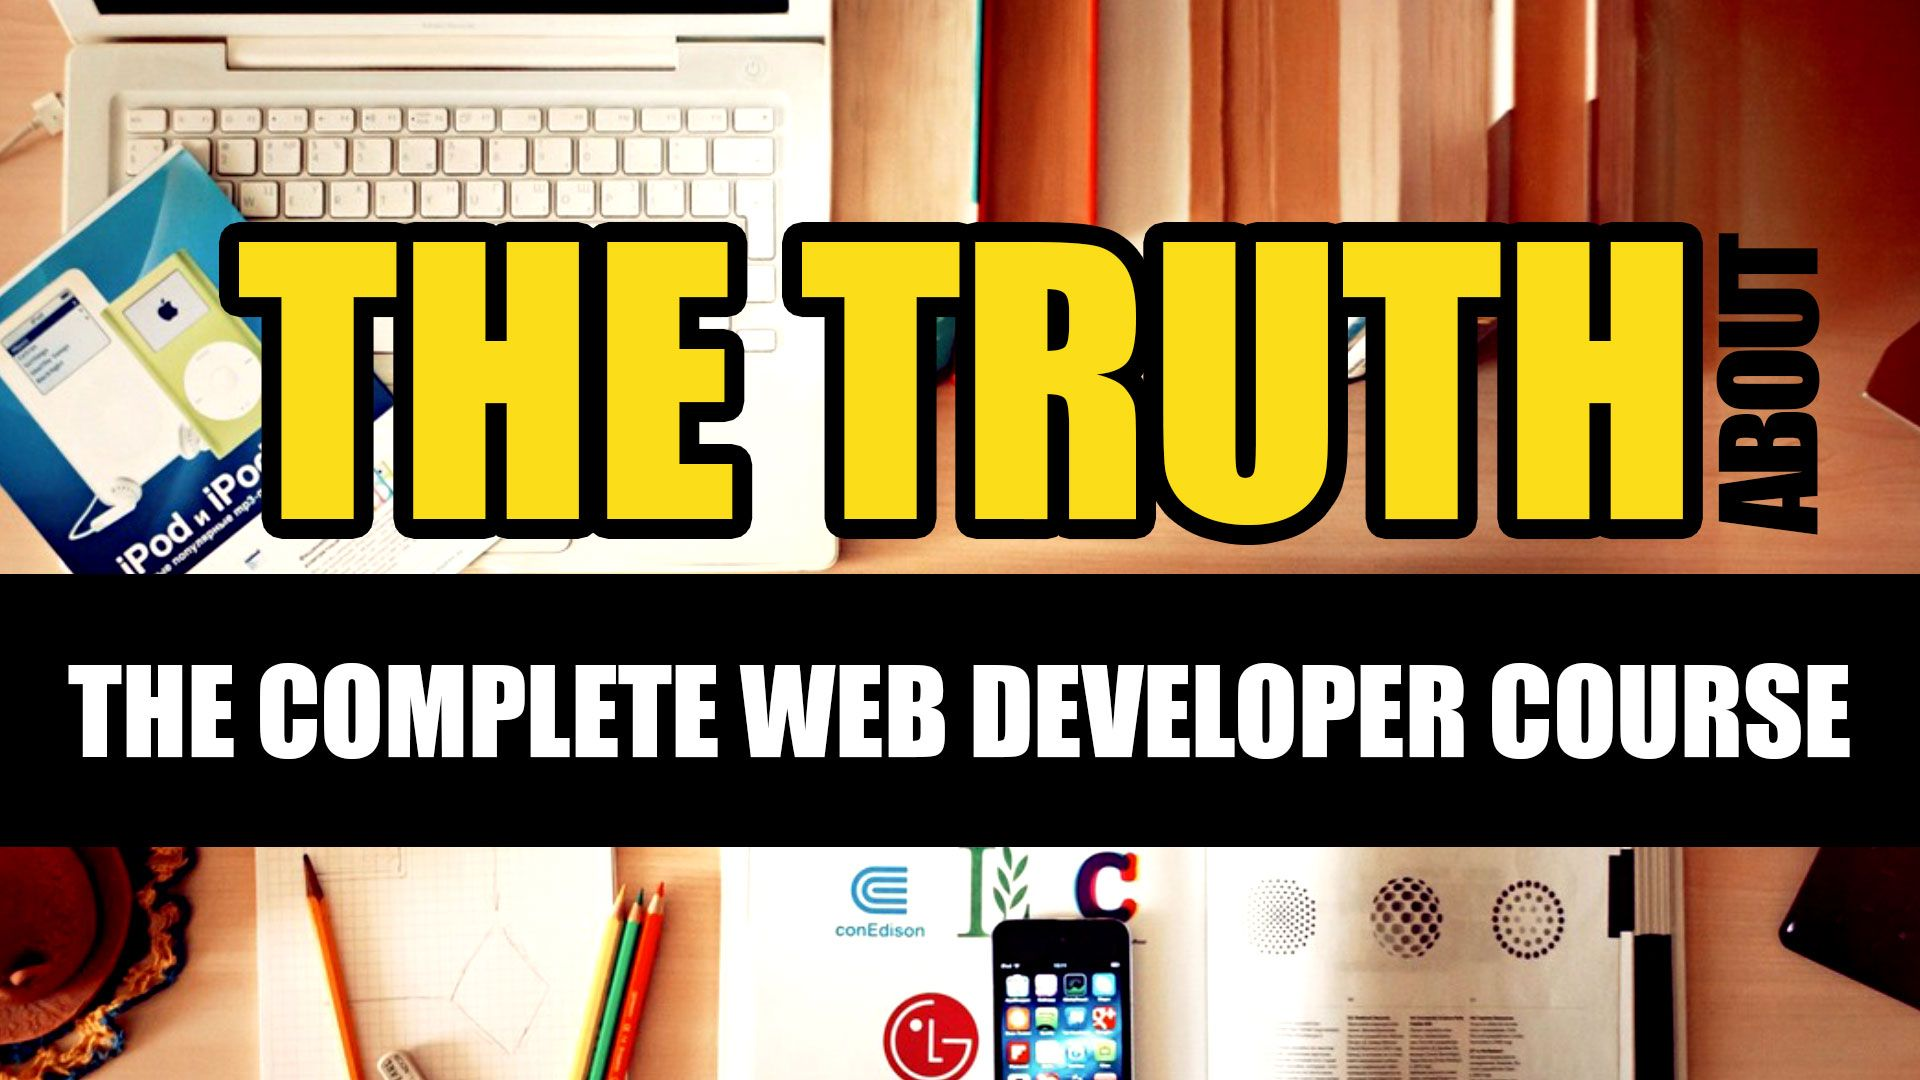 This is my review of Rob Percival's Complete Web Developer Course on